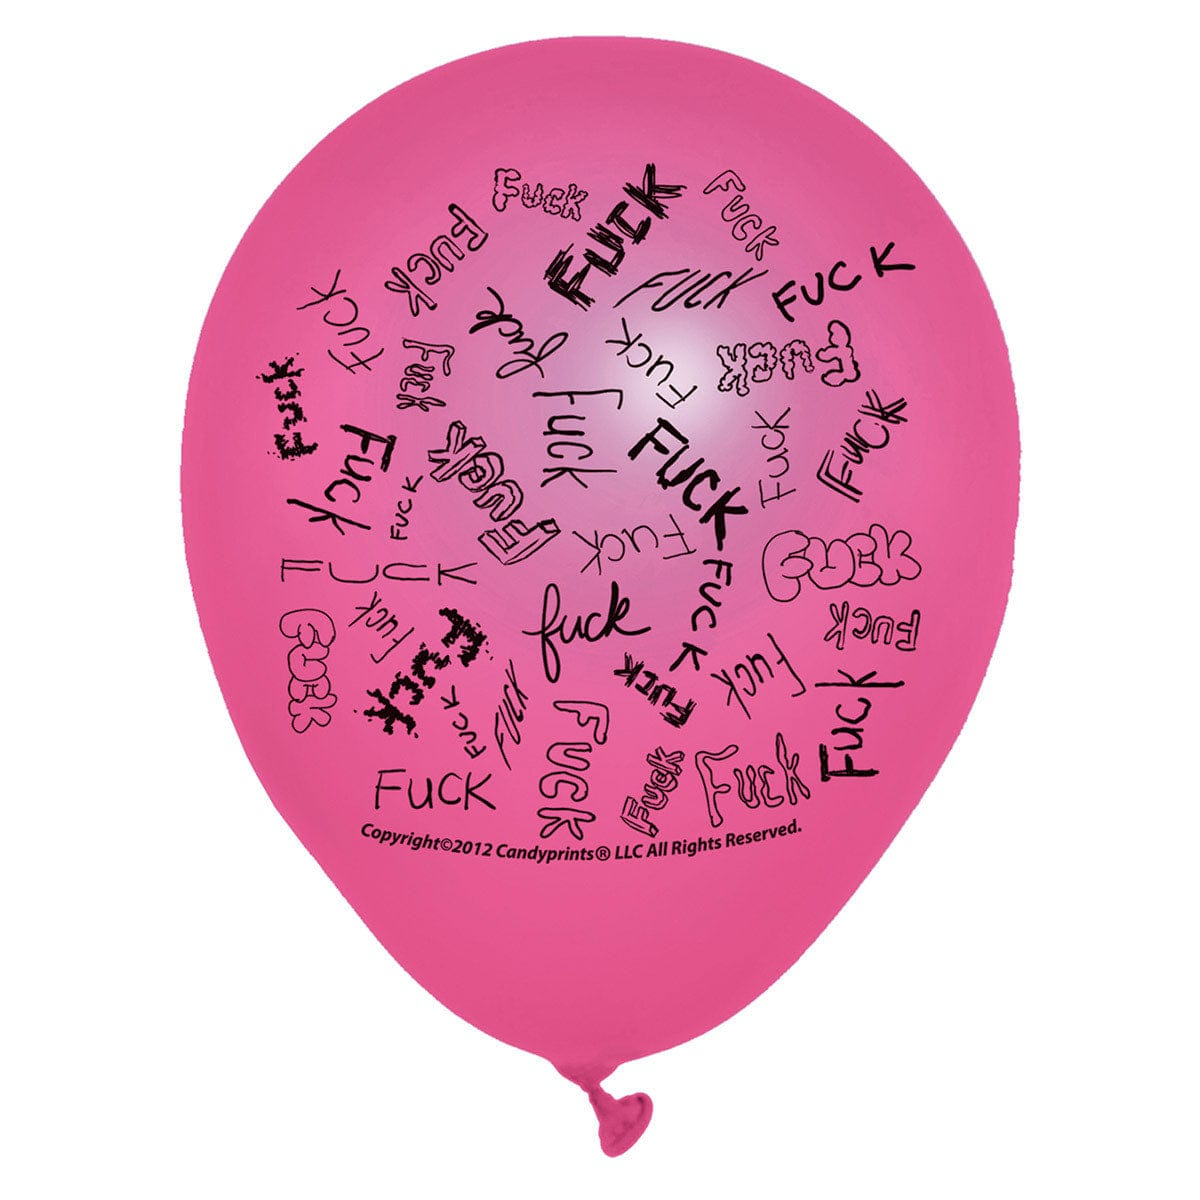 F-Bomb Balloons 8-Pack by Candyprints - rolik